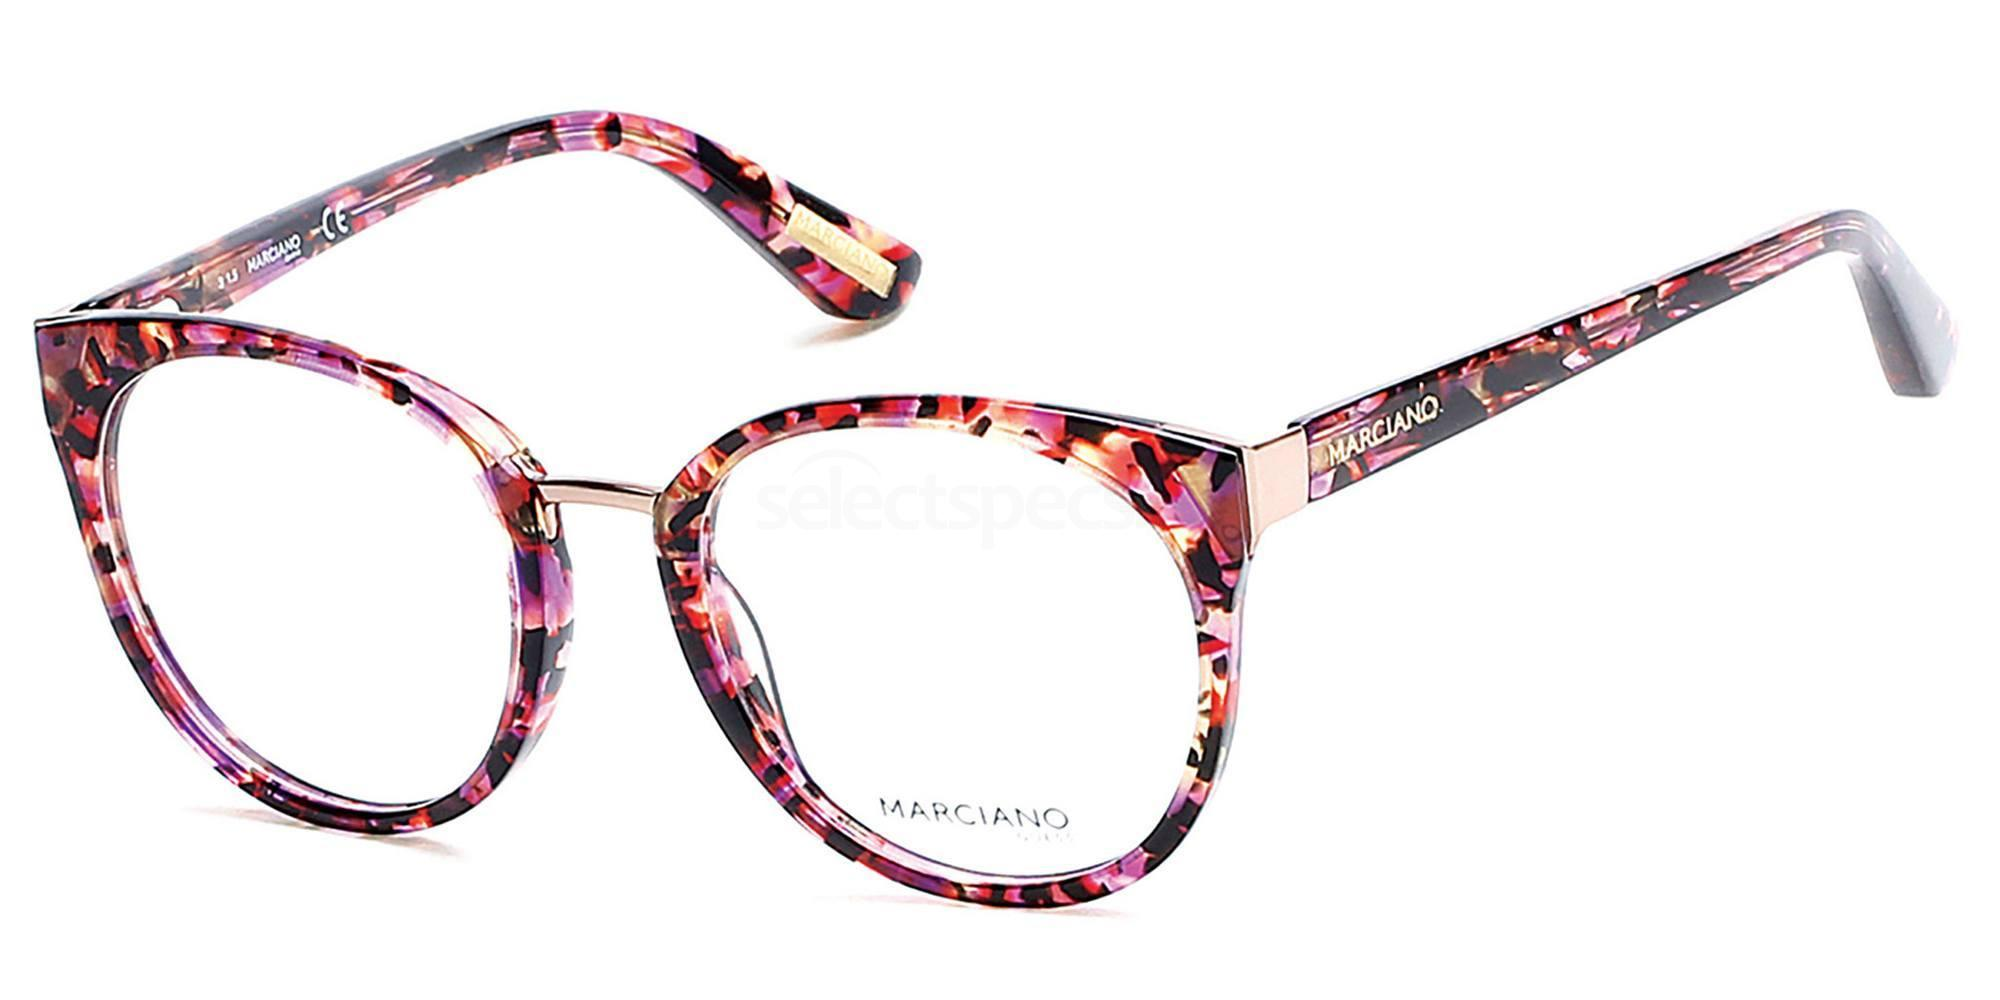 083 GM0285 Glasses, Guess by Marciano